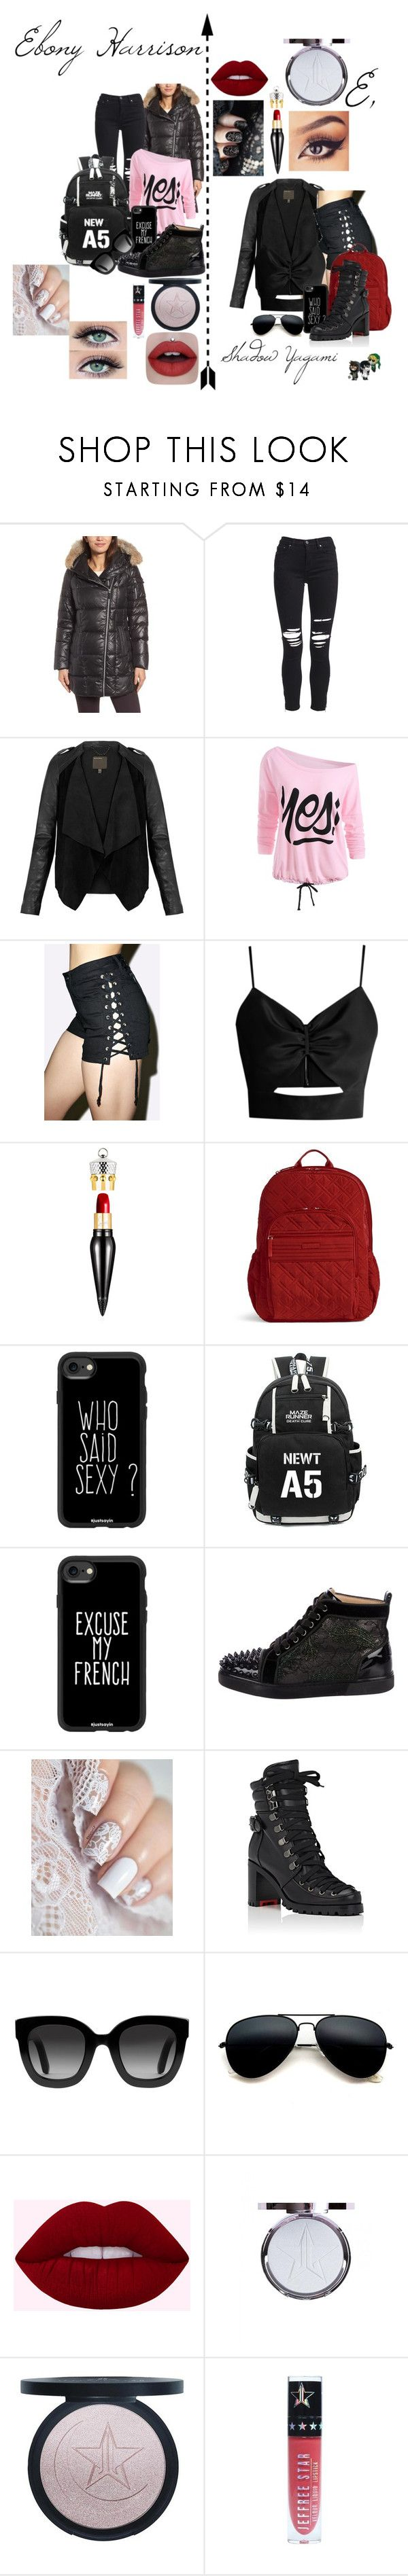 """""""Ebony 'E' Harrison"""" by ticciboby-thekiller-drowned on Polyvore featuring Andrew Marc, AMIRI, MuuBaa, Racil, Christian Louboutin, Vera Bradley, Casetify, Gucci and Jeffree Star"""